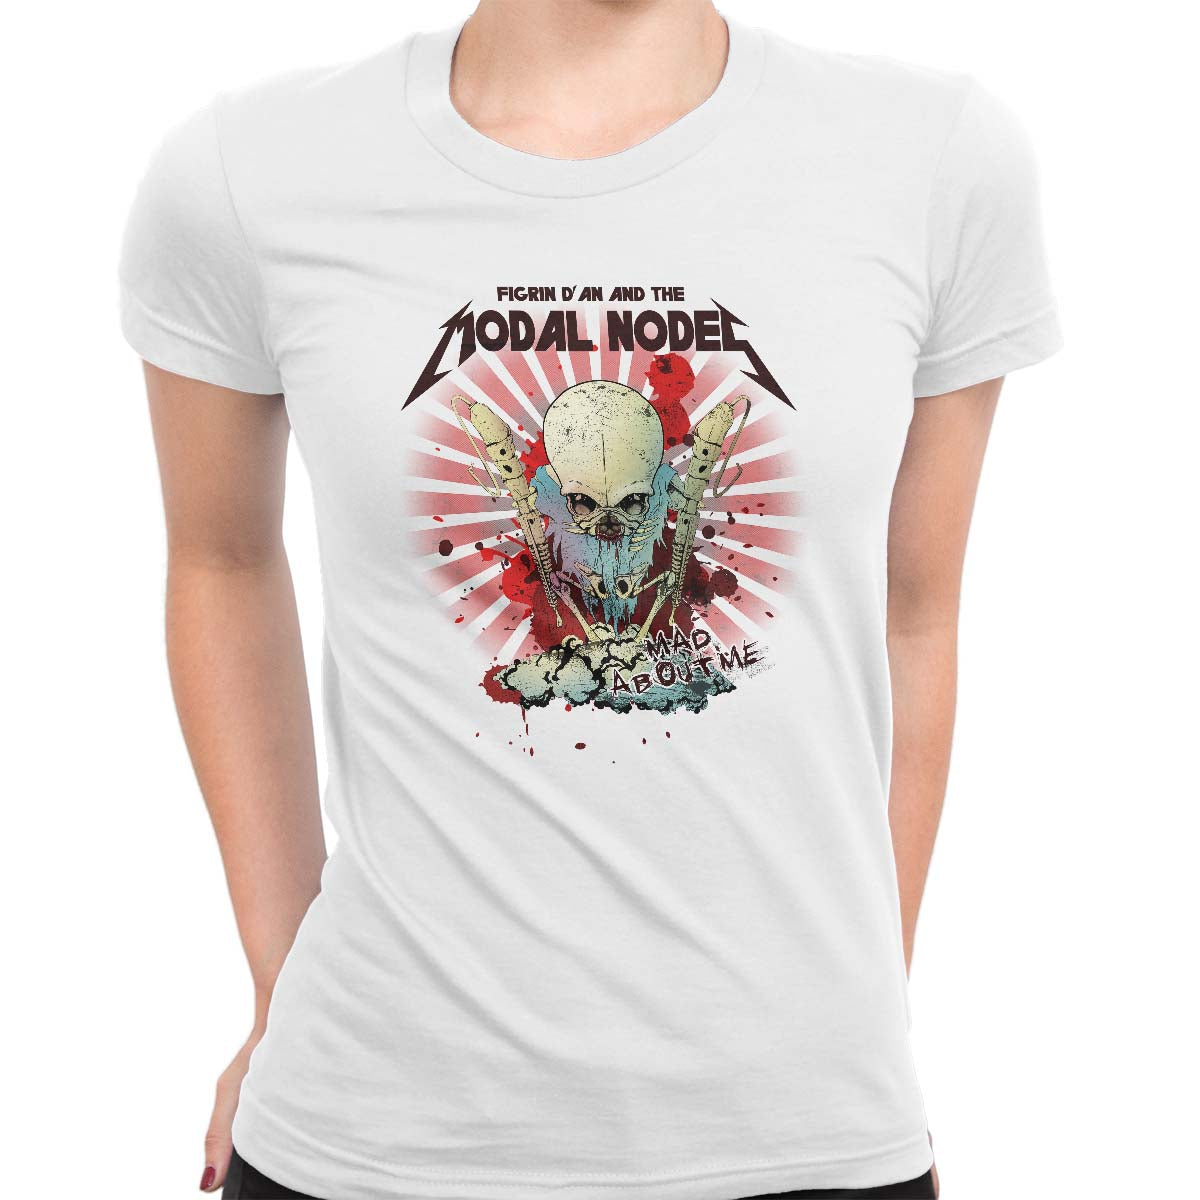 star wars modal nodes tee white